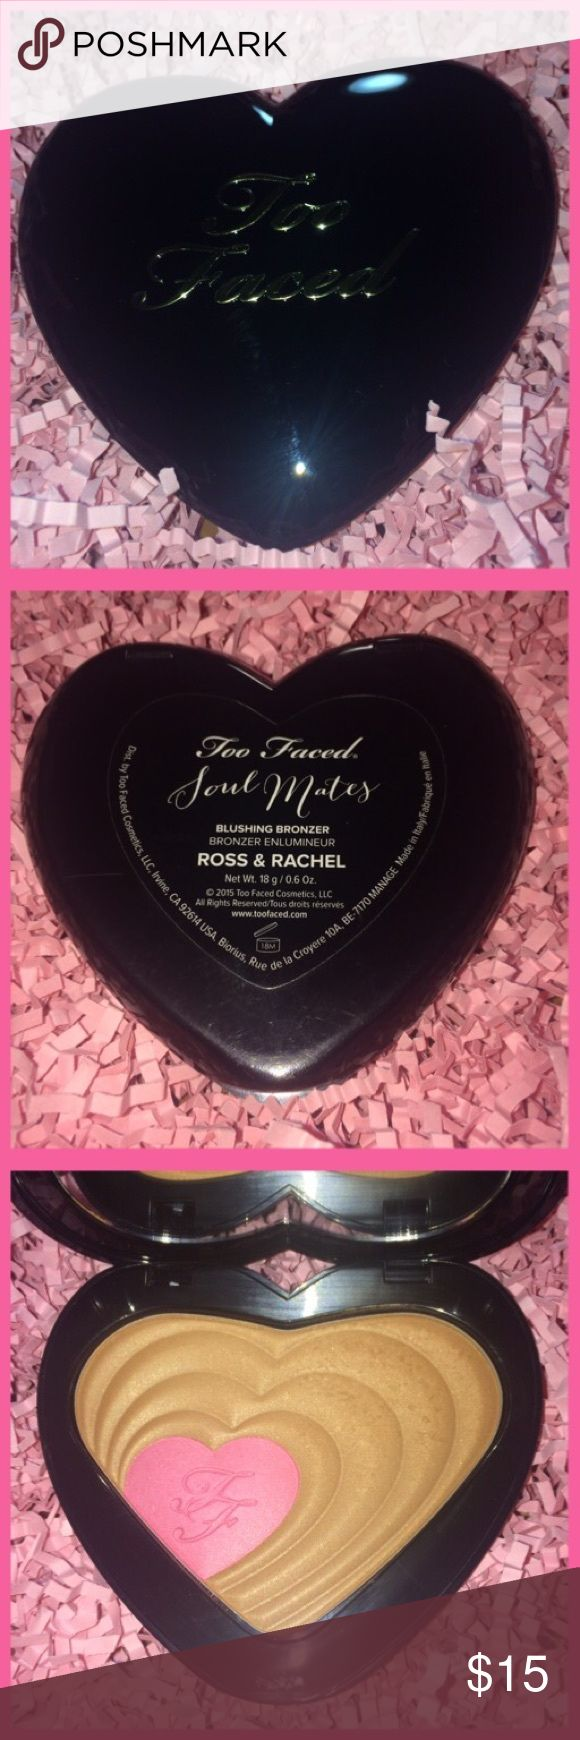 Too Faced Soul Mates Blushing Bronzer Too Faced Soul Mates Blushing Bronzer (Ross & Rachel) 18g/0.6oz Bronzer in Like New Condition only used maybe twice and Blush never used! ⭐AUTHENTIC⭐❤BUNDLE AND SAVE❤ Too Faced Makeup Bronzer